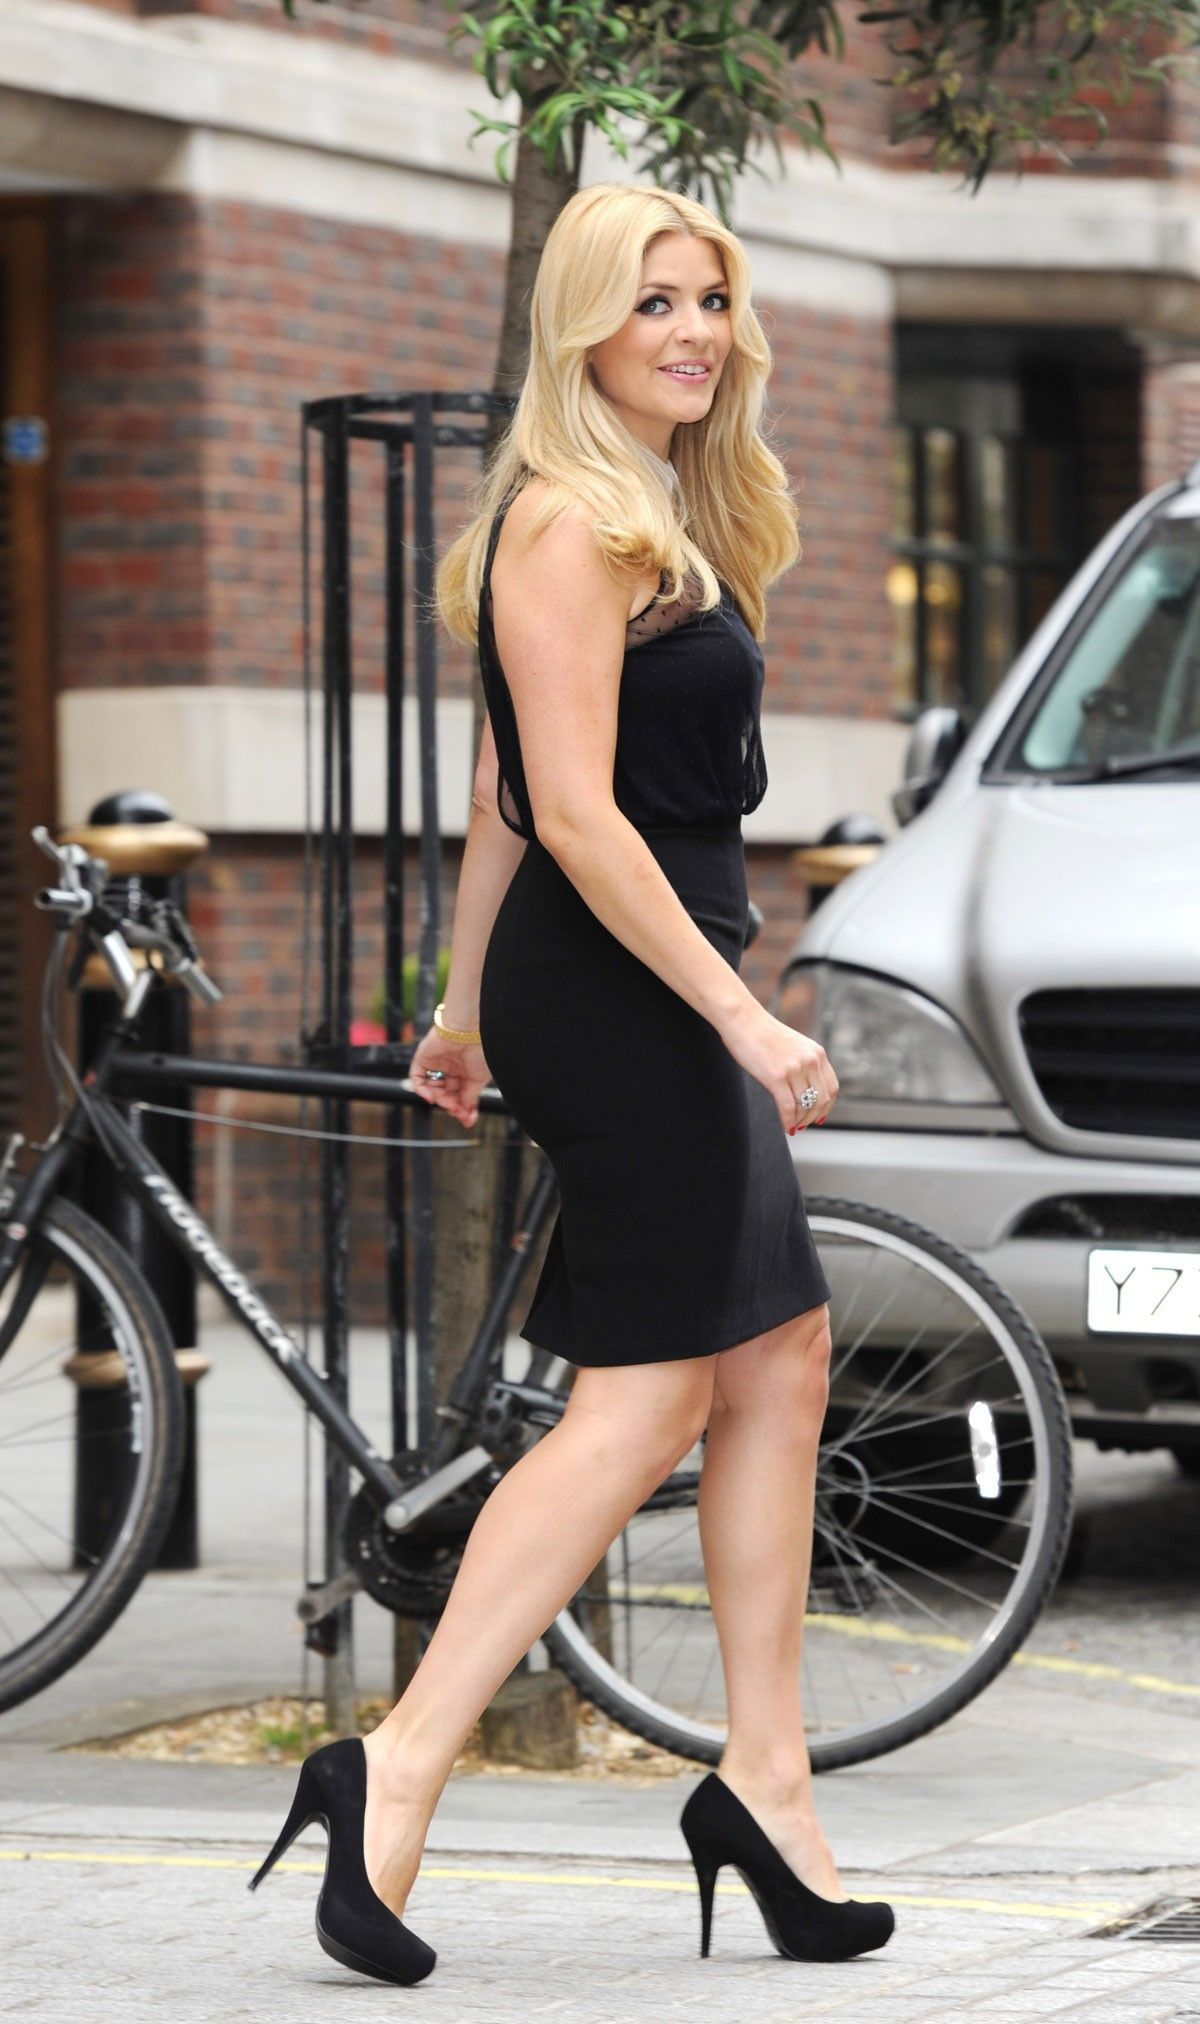 Discussion on this topic: Holly Willoughby attends Marie Claire work with , holly-willoughby-attends-marie-claire-work-with/